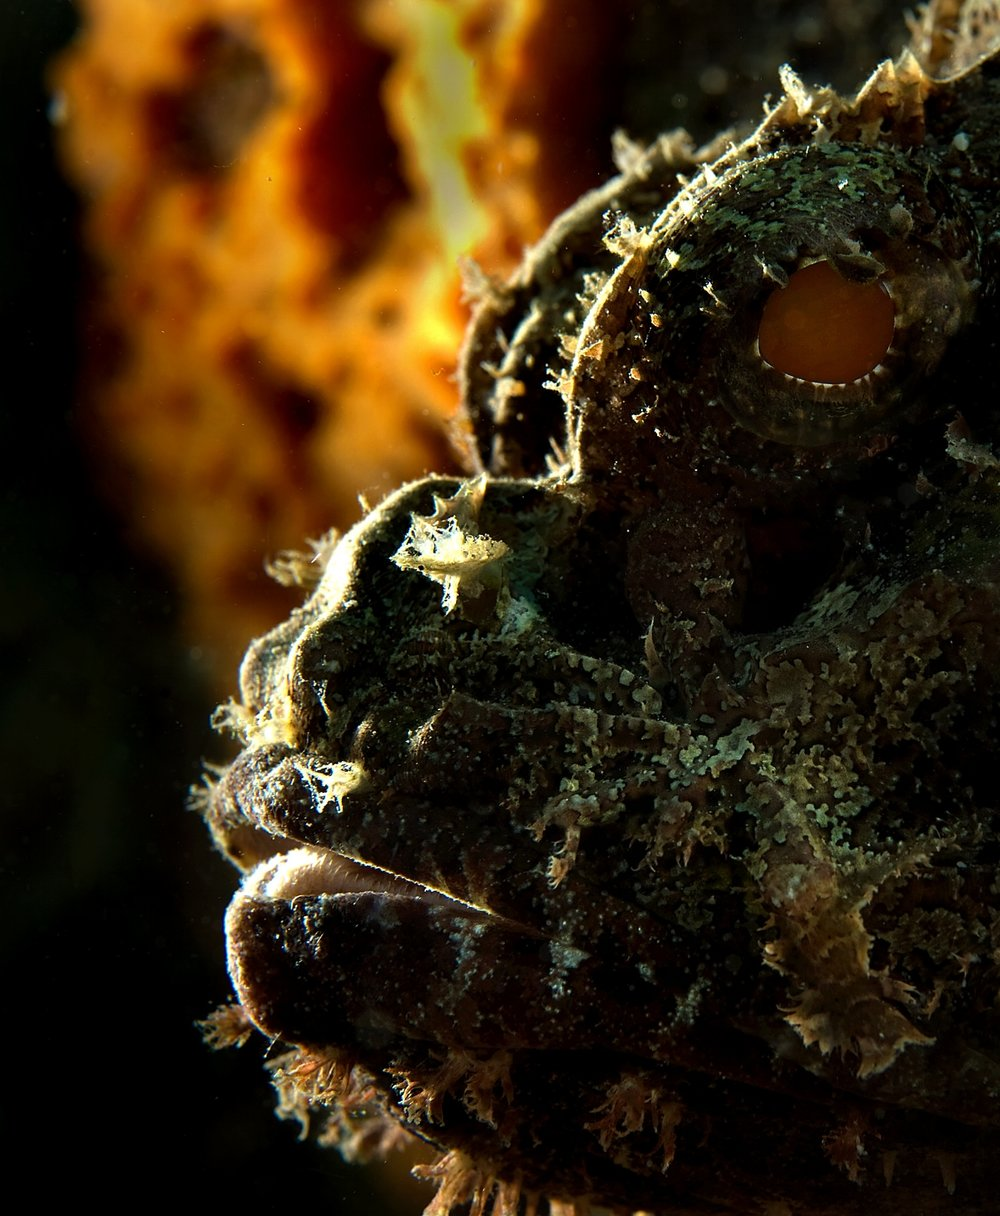 A Scorpion fish (Scorpaena plumieri) lies motionless on a coral head in Bonaire, Netherlands Antilles on Wednesday, June 10, 2009. These fish are very difficult to spot as their camouflage is so effective. They lie still, visually blending into the surrounding rocks and feed by sucking smaller fish into their mouths. They also have venomous spines on their dorsal fins for protection.